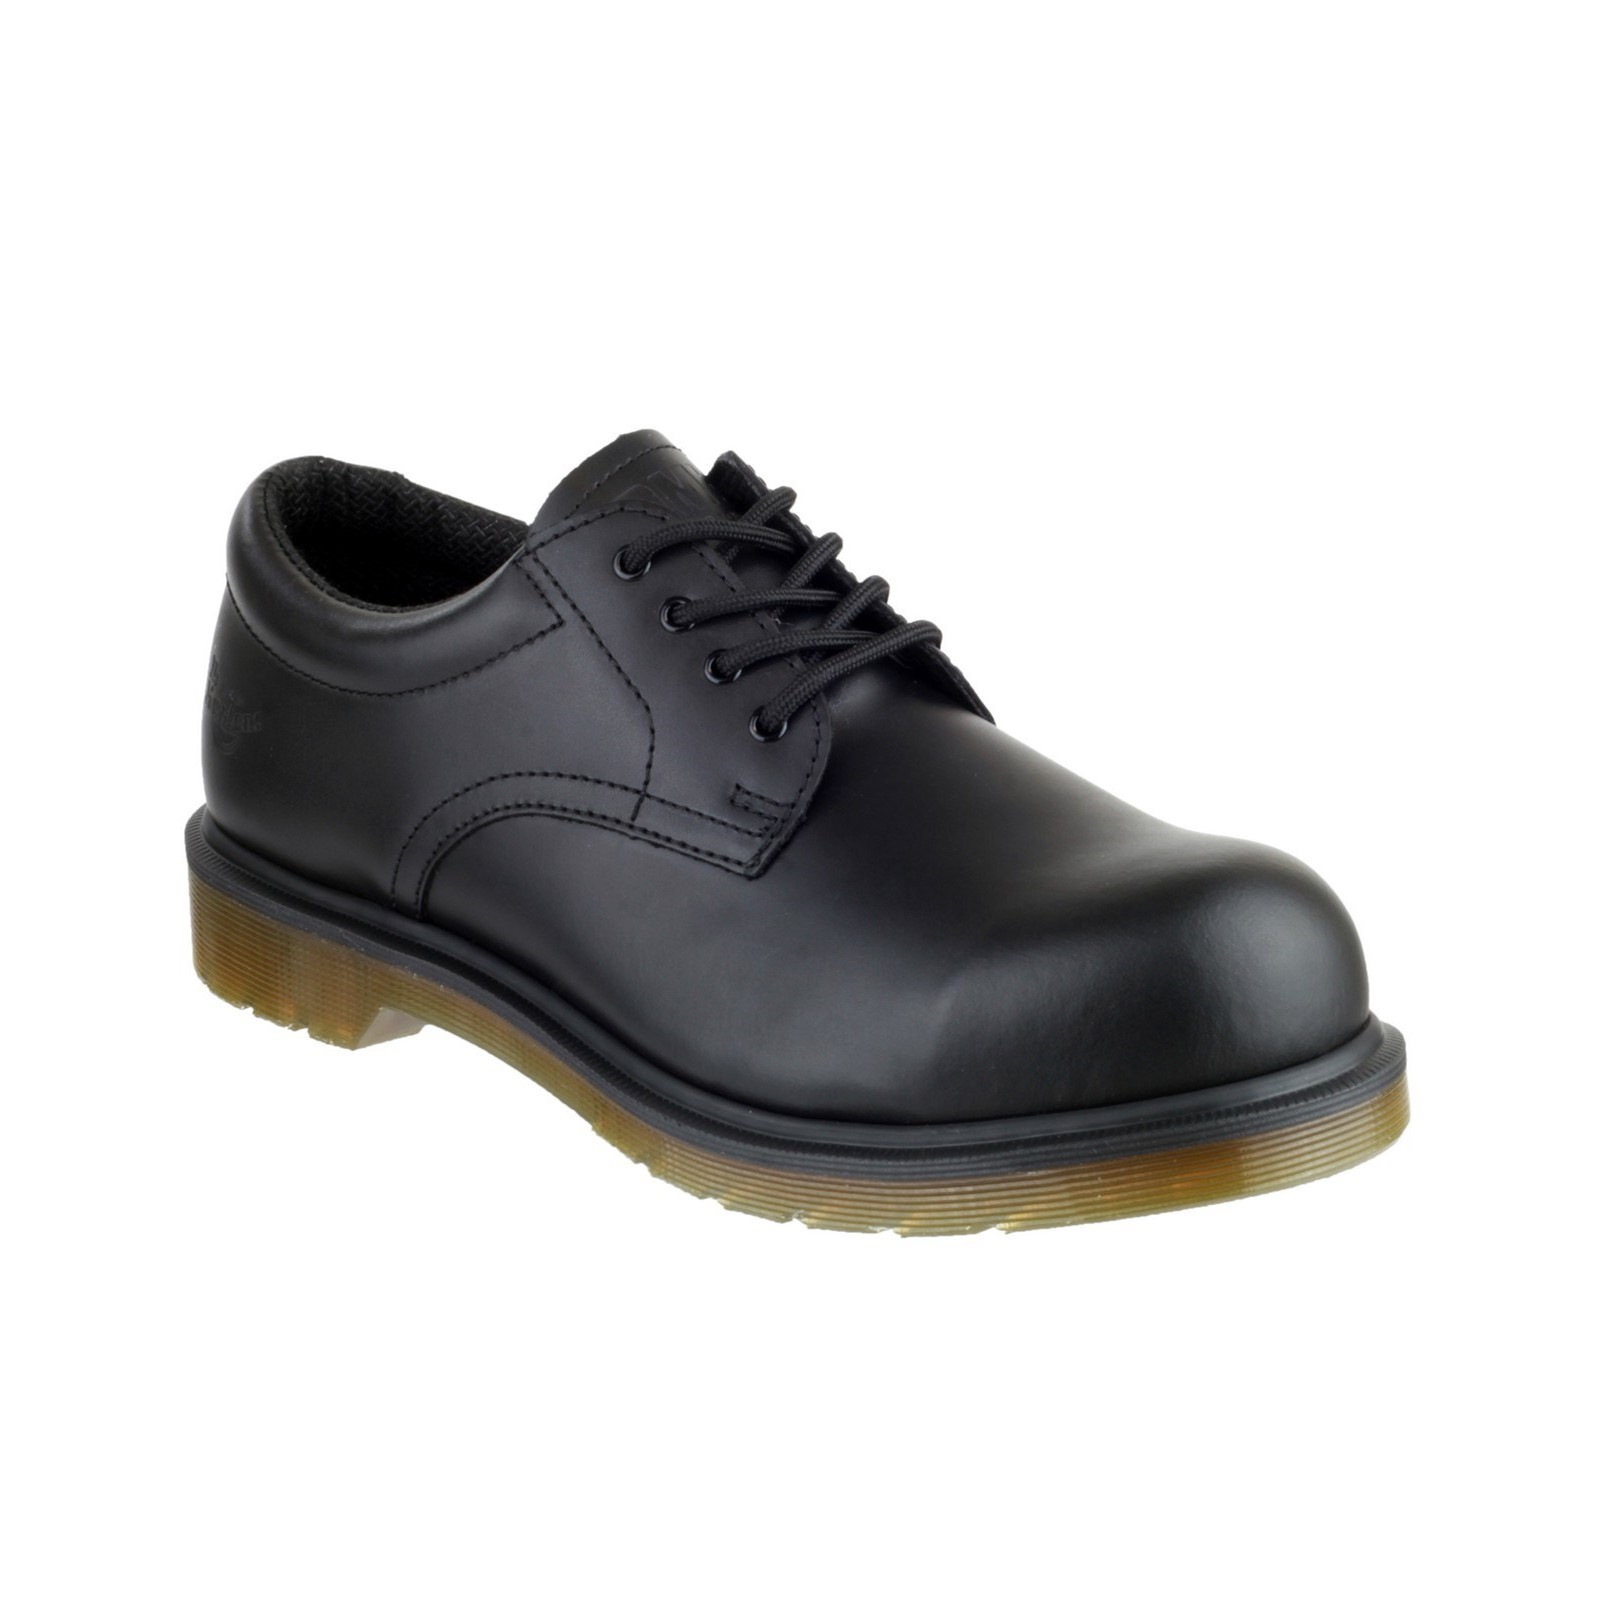 Dr Martens Unisex FS57 Icon Lace up Safety shoes